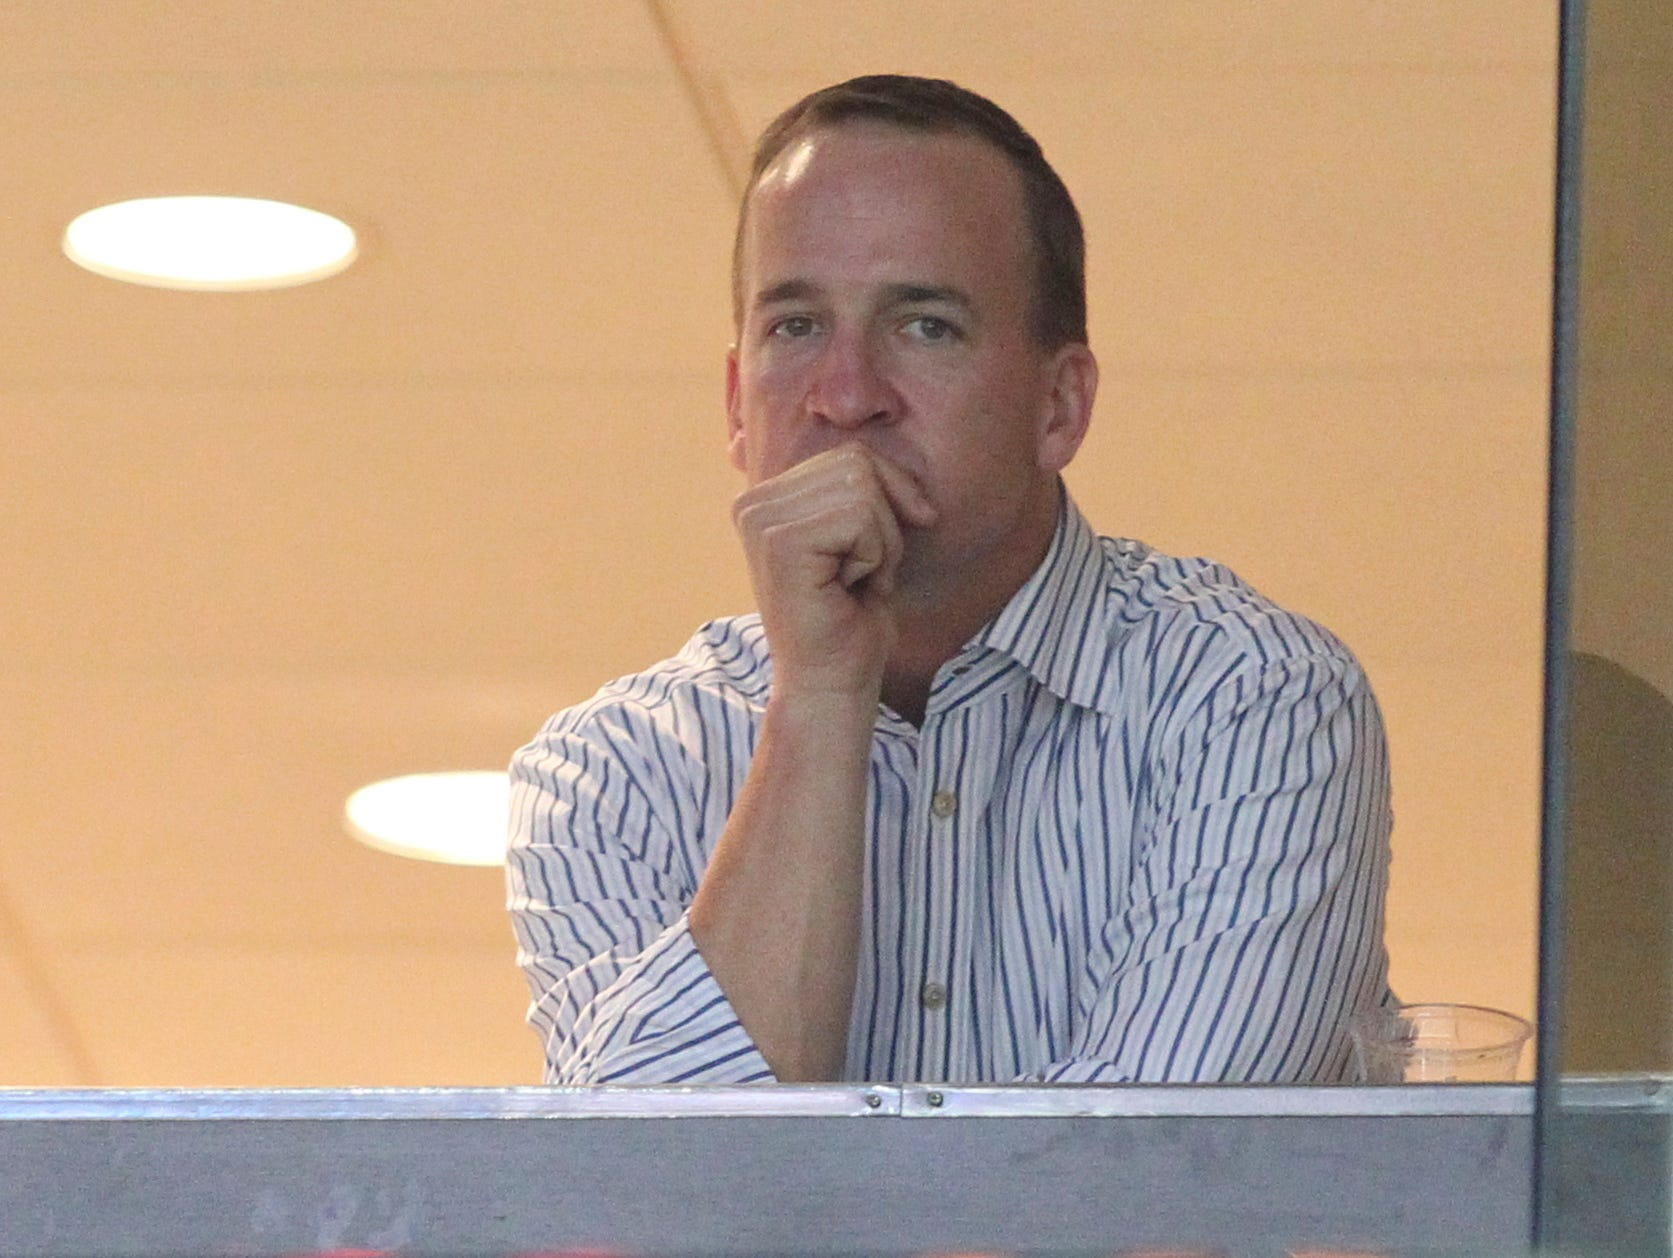 Denver Broncos quarterback Peyton Manning looks on during a game between the Memphis Grizzlies and the Oklahoma City Thunder in Memphis in April.